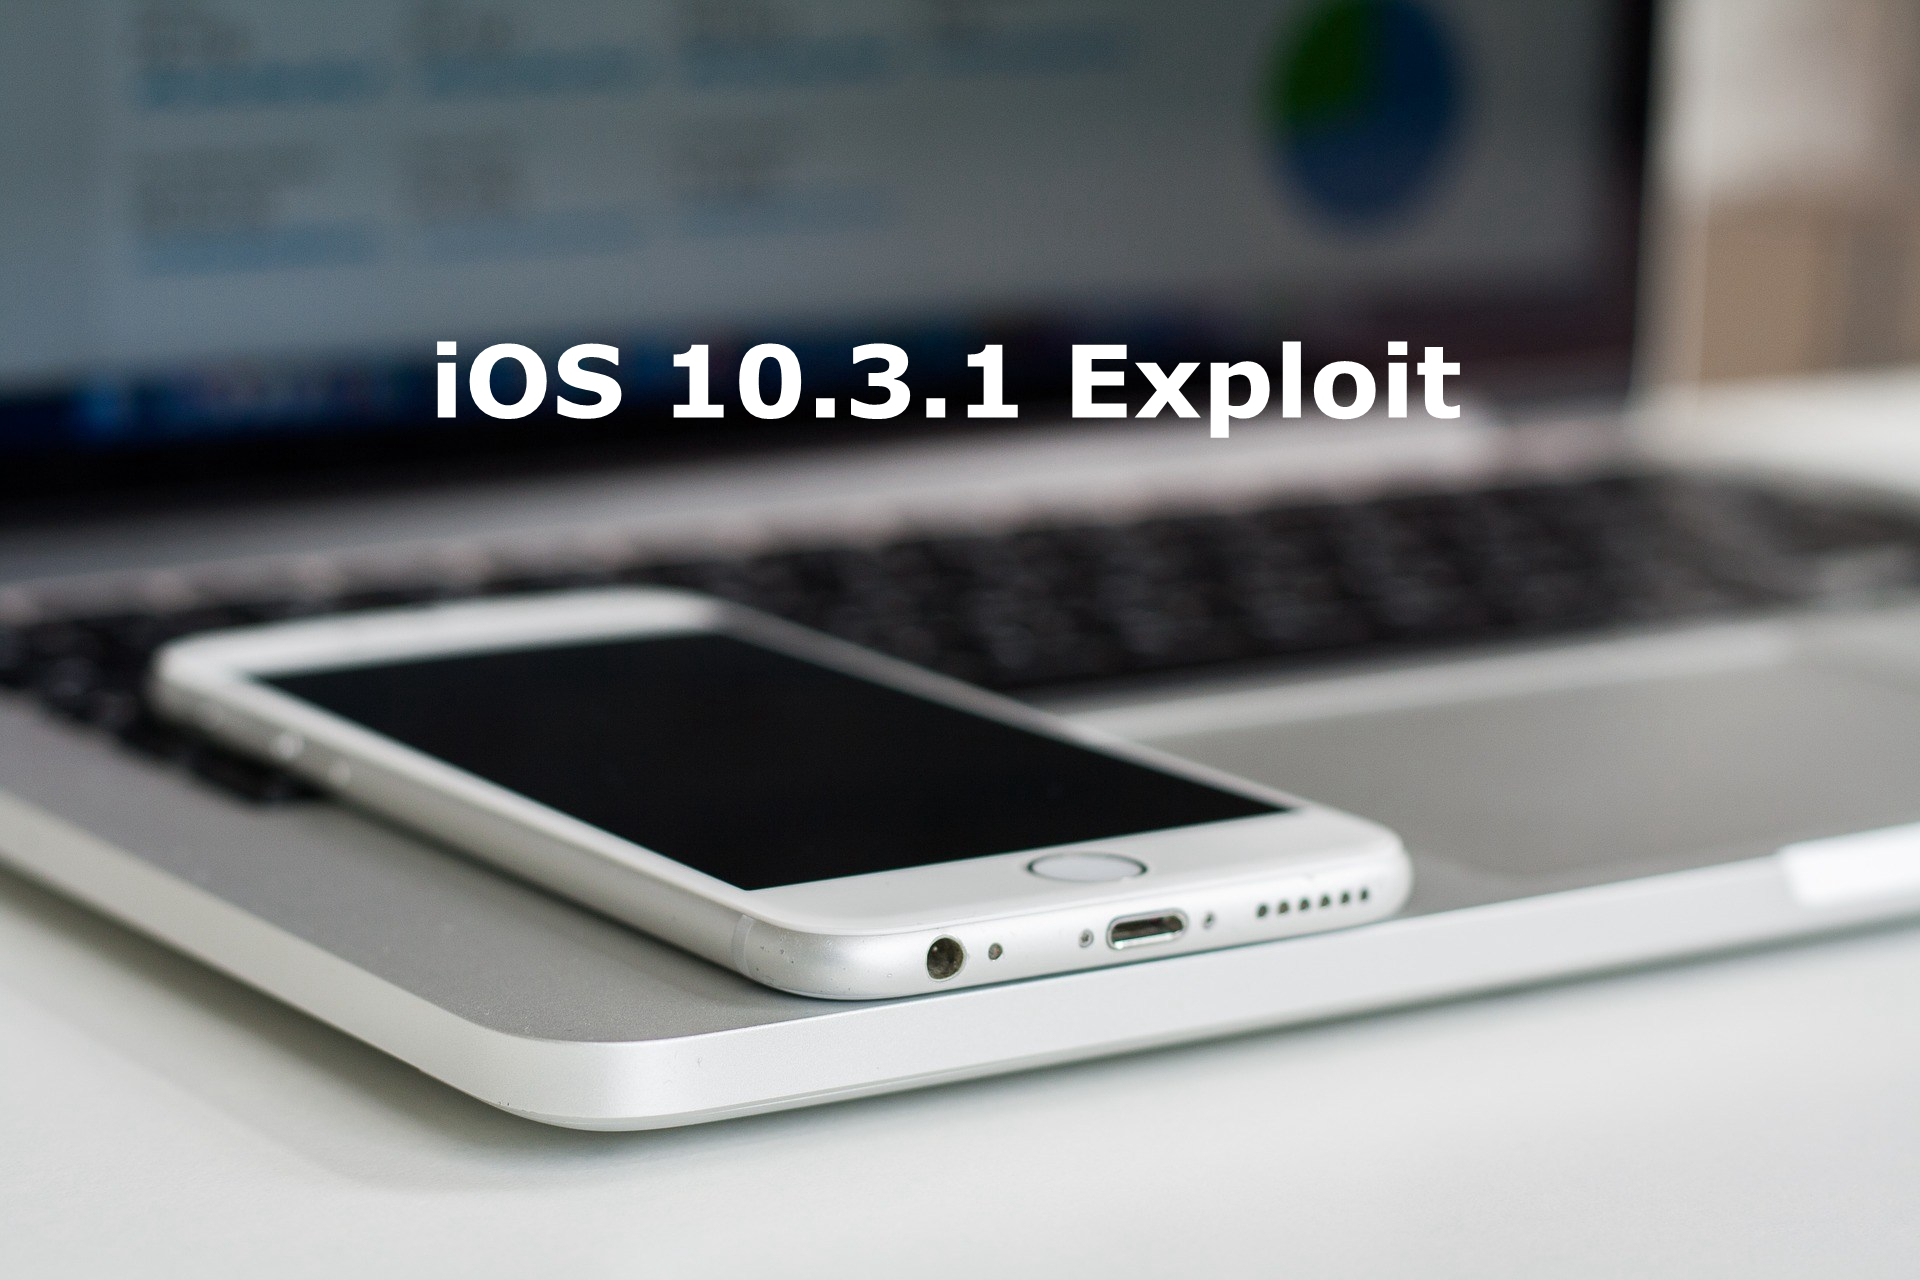 10.3.1 Exploit  May Allow iOS 10.2 Downgrade and Jailbreak